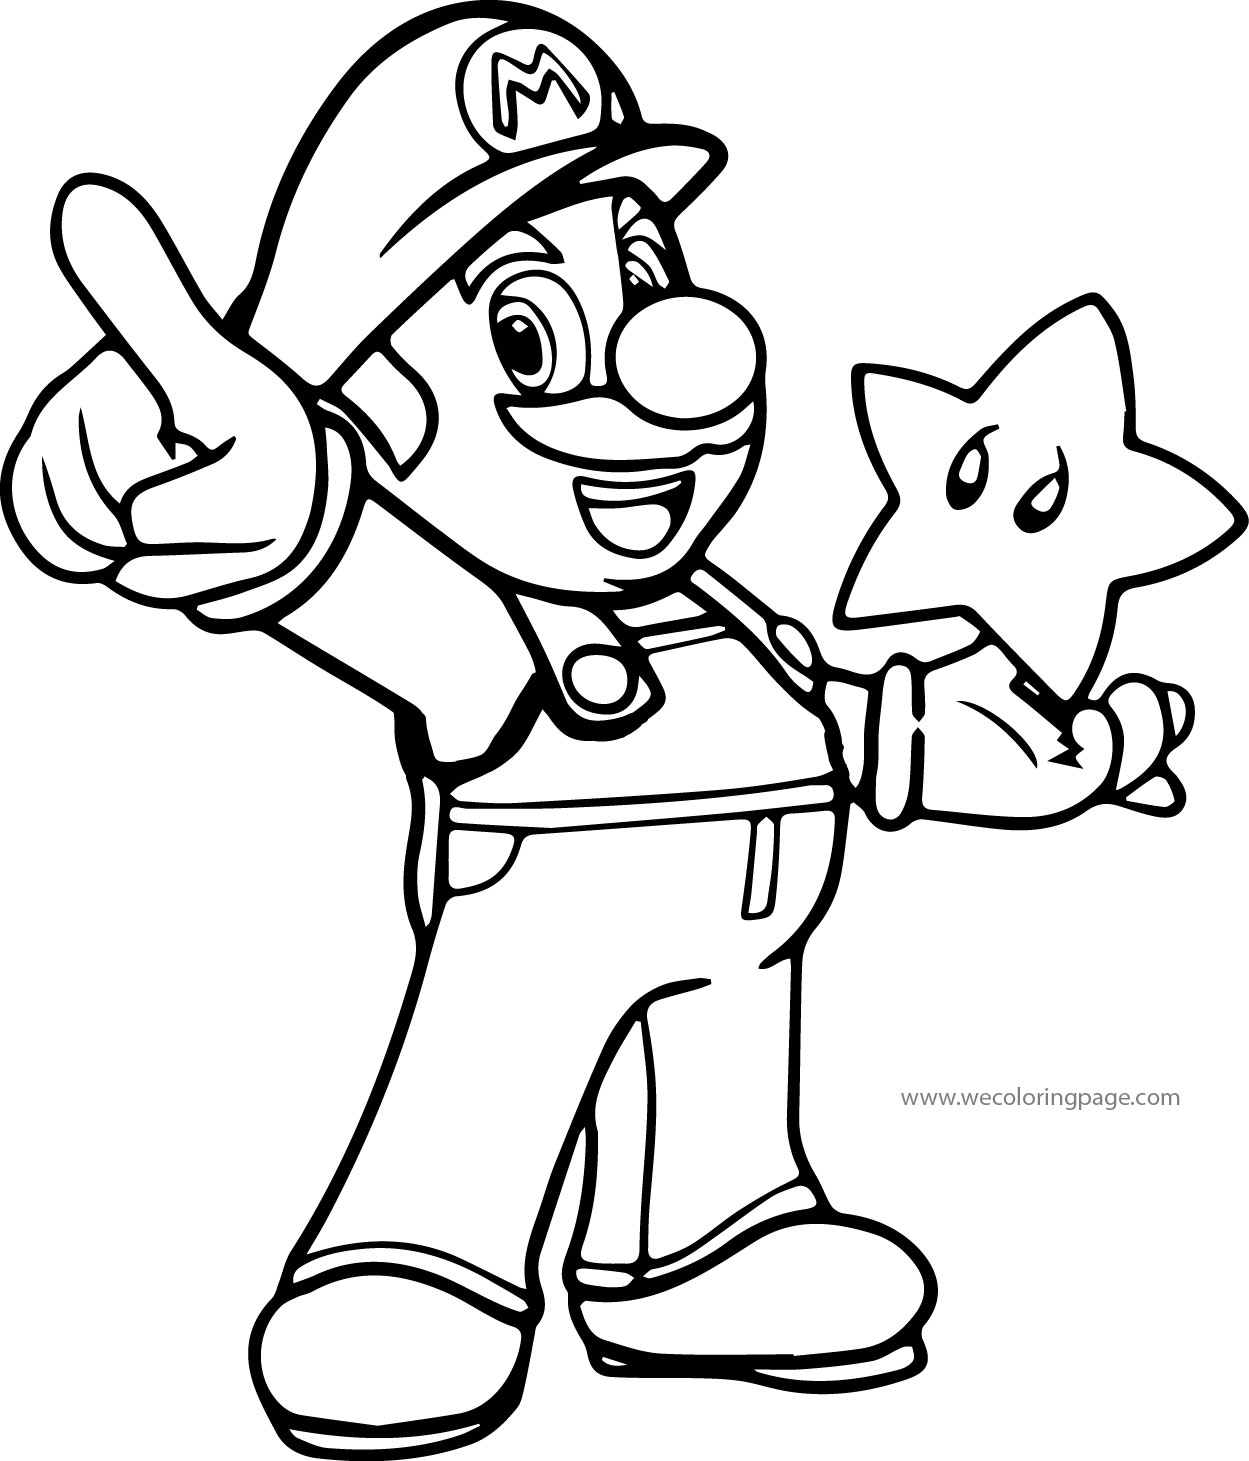 mega mario coloring pages - photo#10